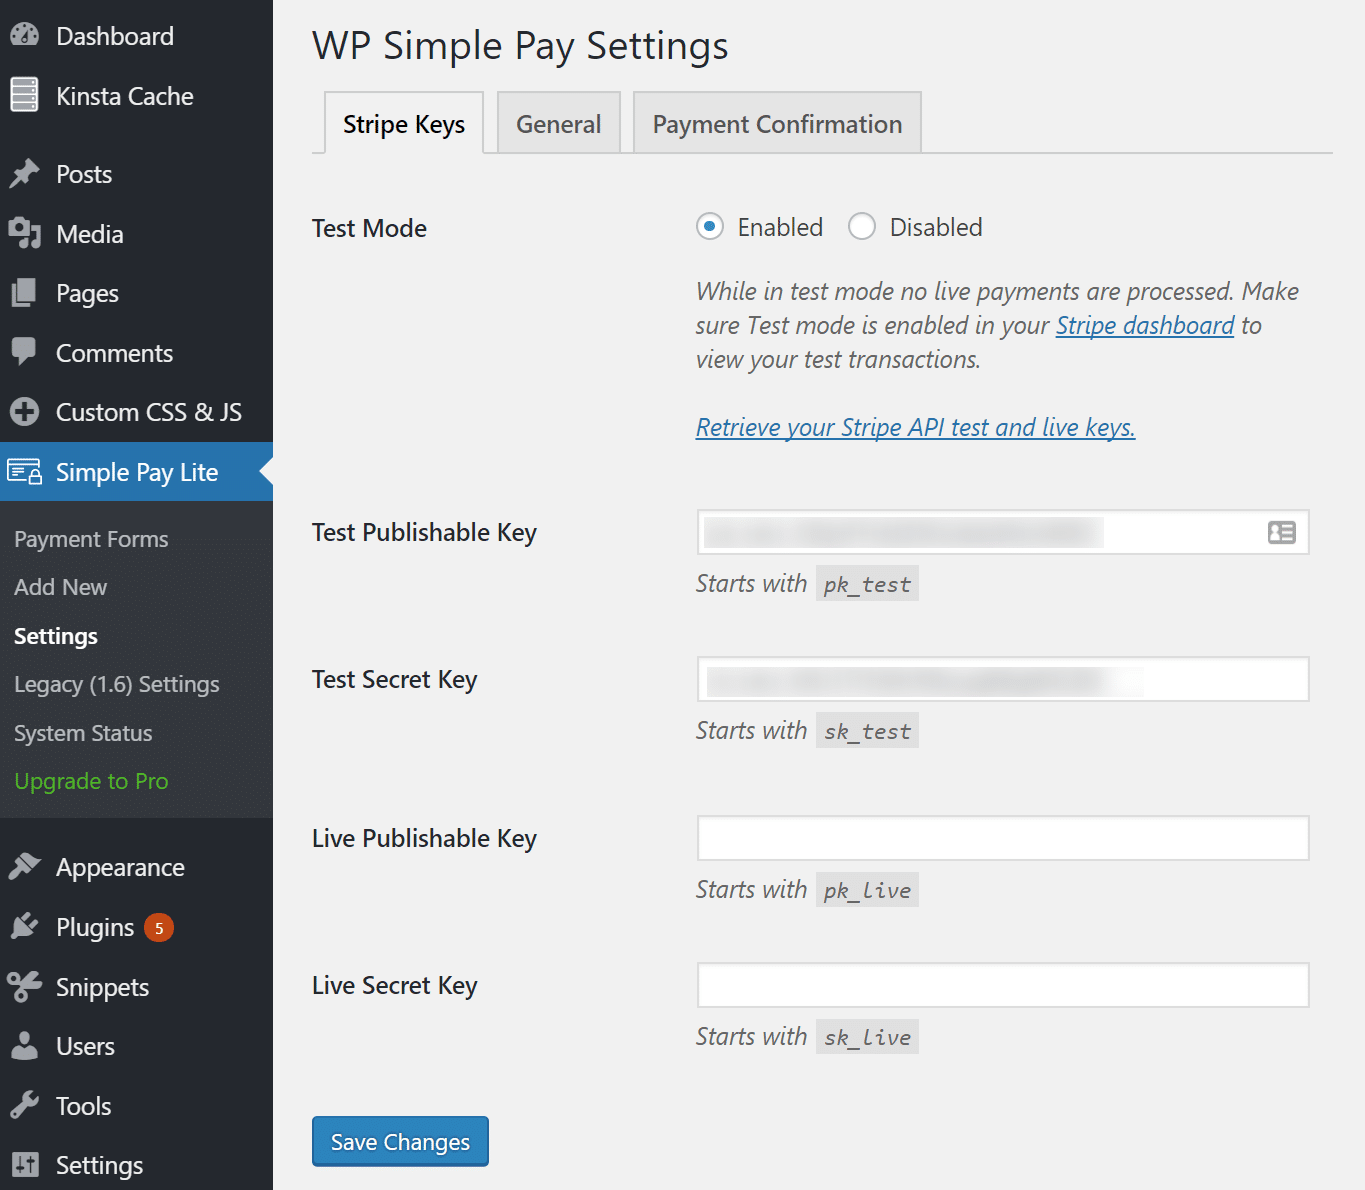 Instalar el plugin WP Simple Pay Lite